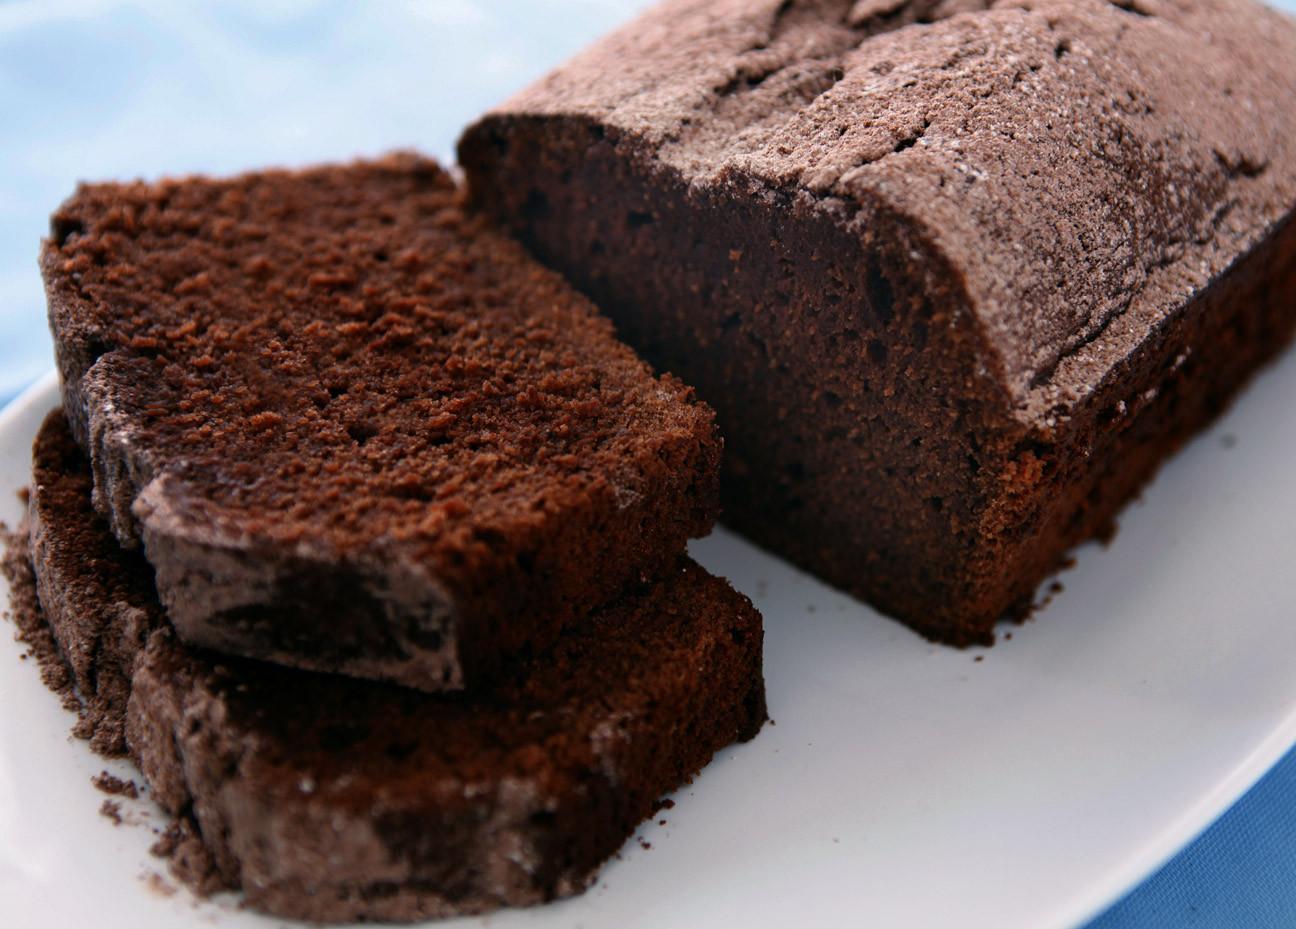 Chocolate Pound Cake  Confessions of a Bake aholic Chocolate Pound Cake and an